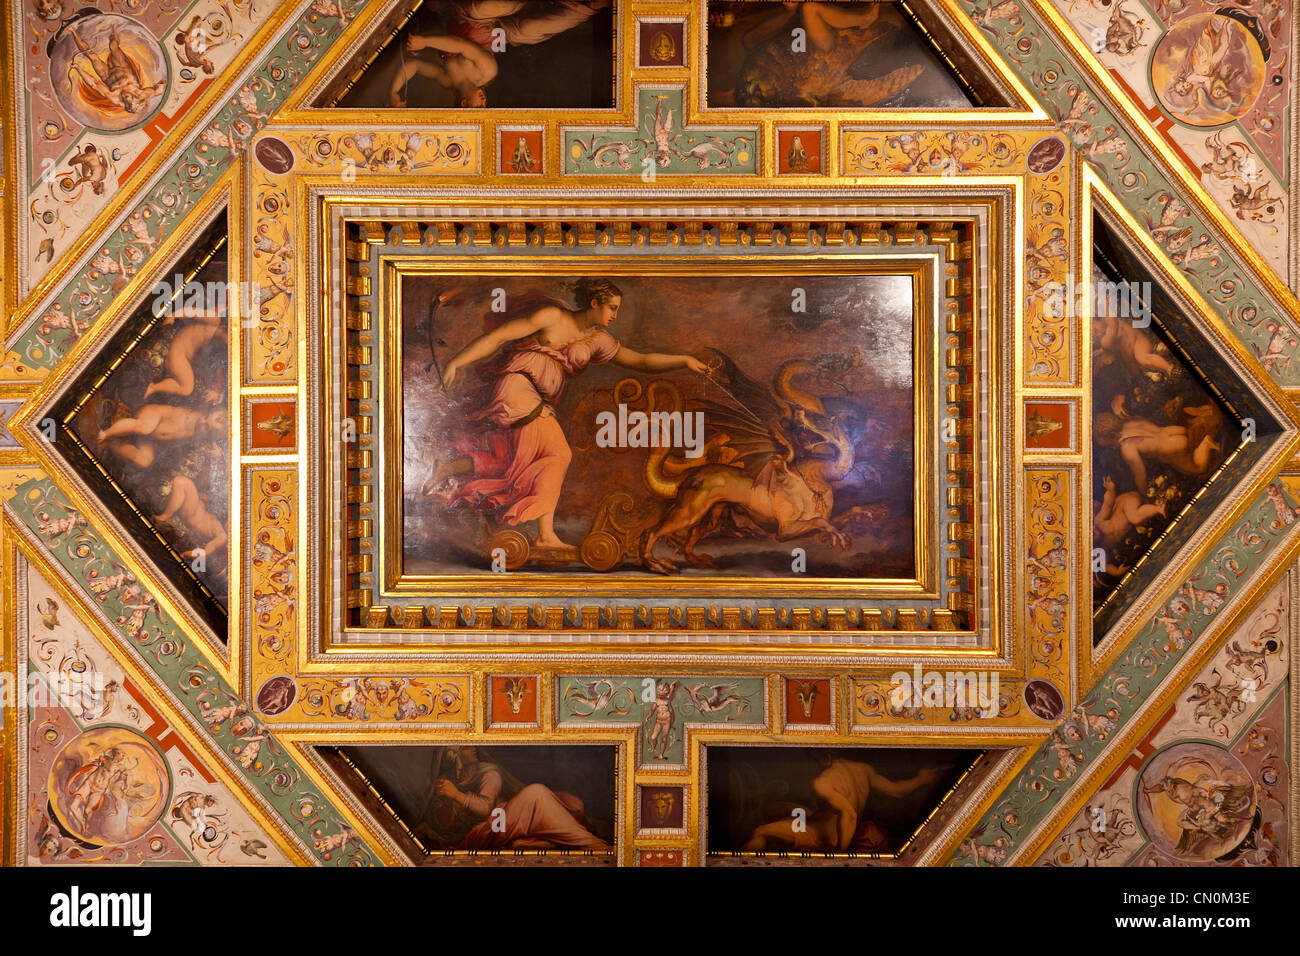 Florence, Ceiling panel in the Palazzo Vecchio, Unesco World Heritage Site, - Stock Image